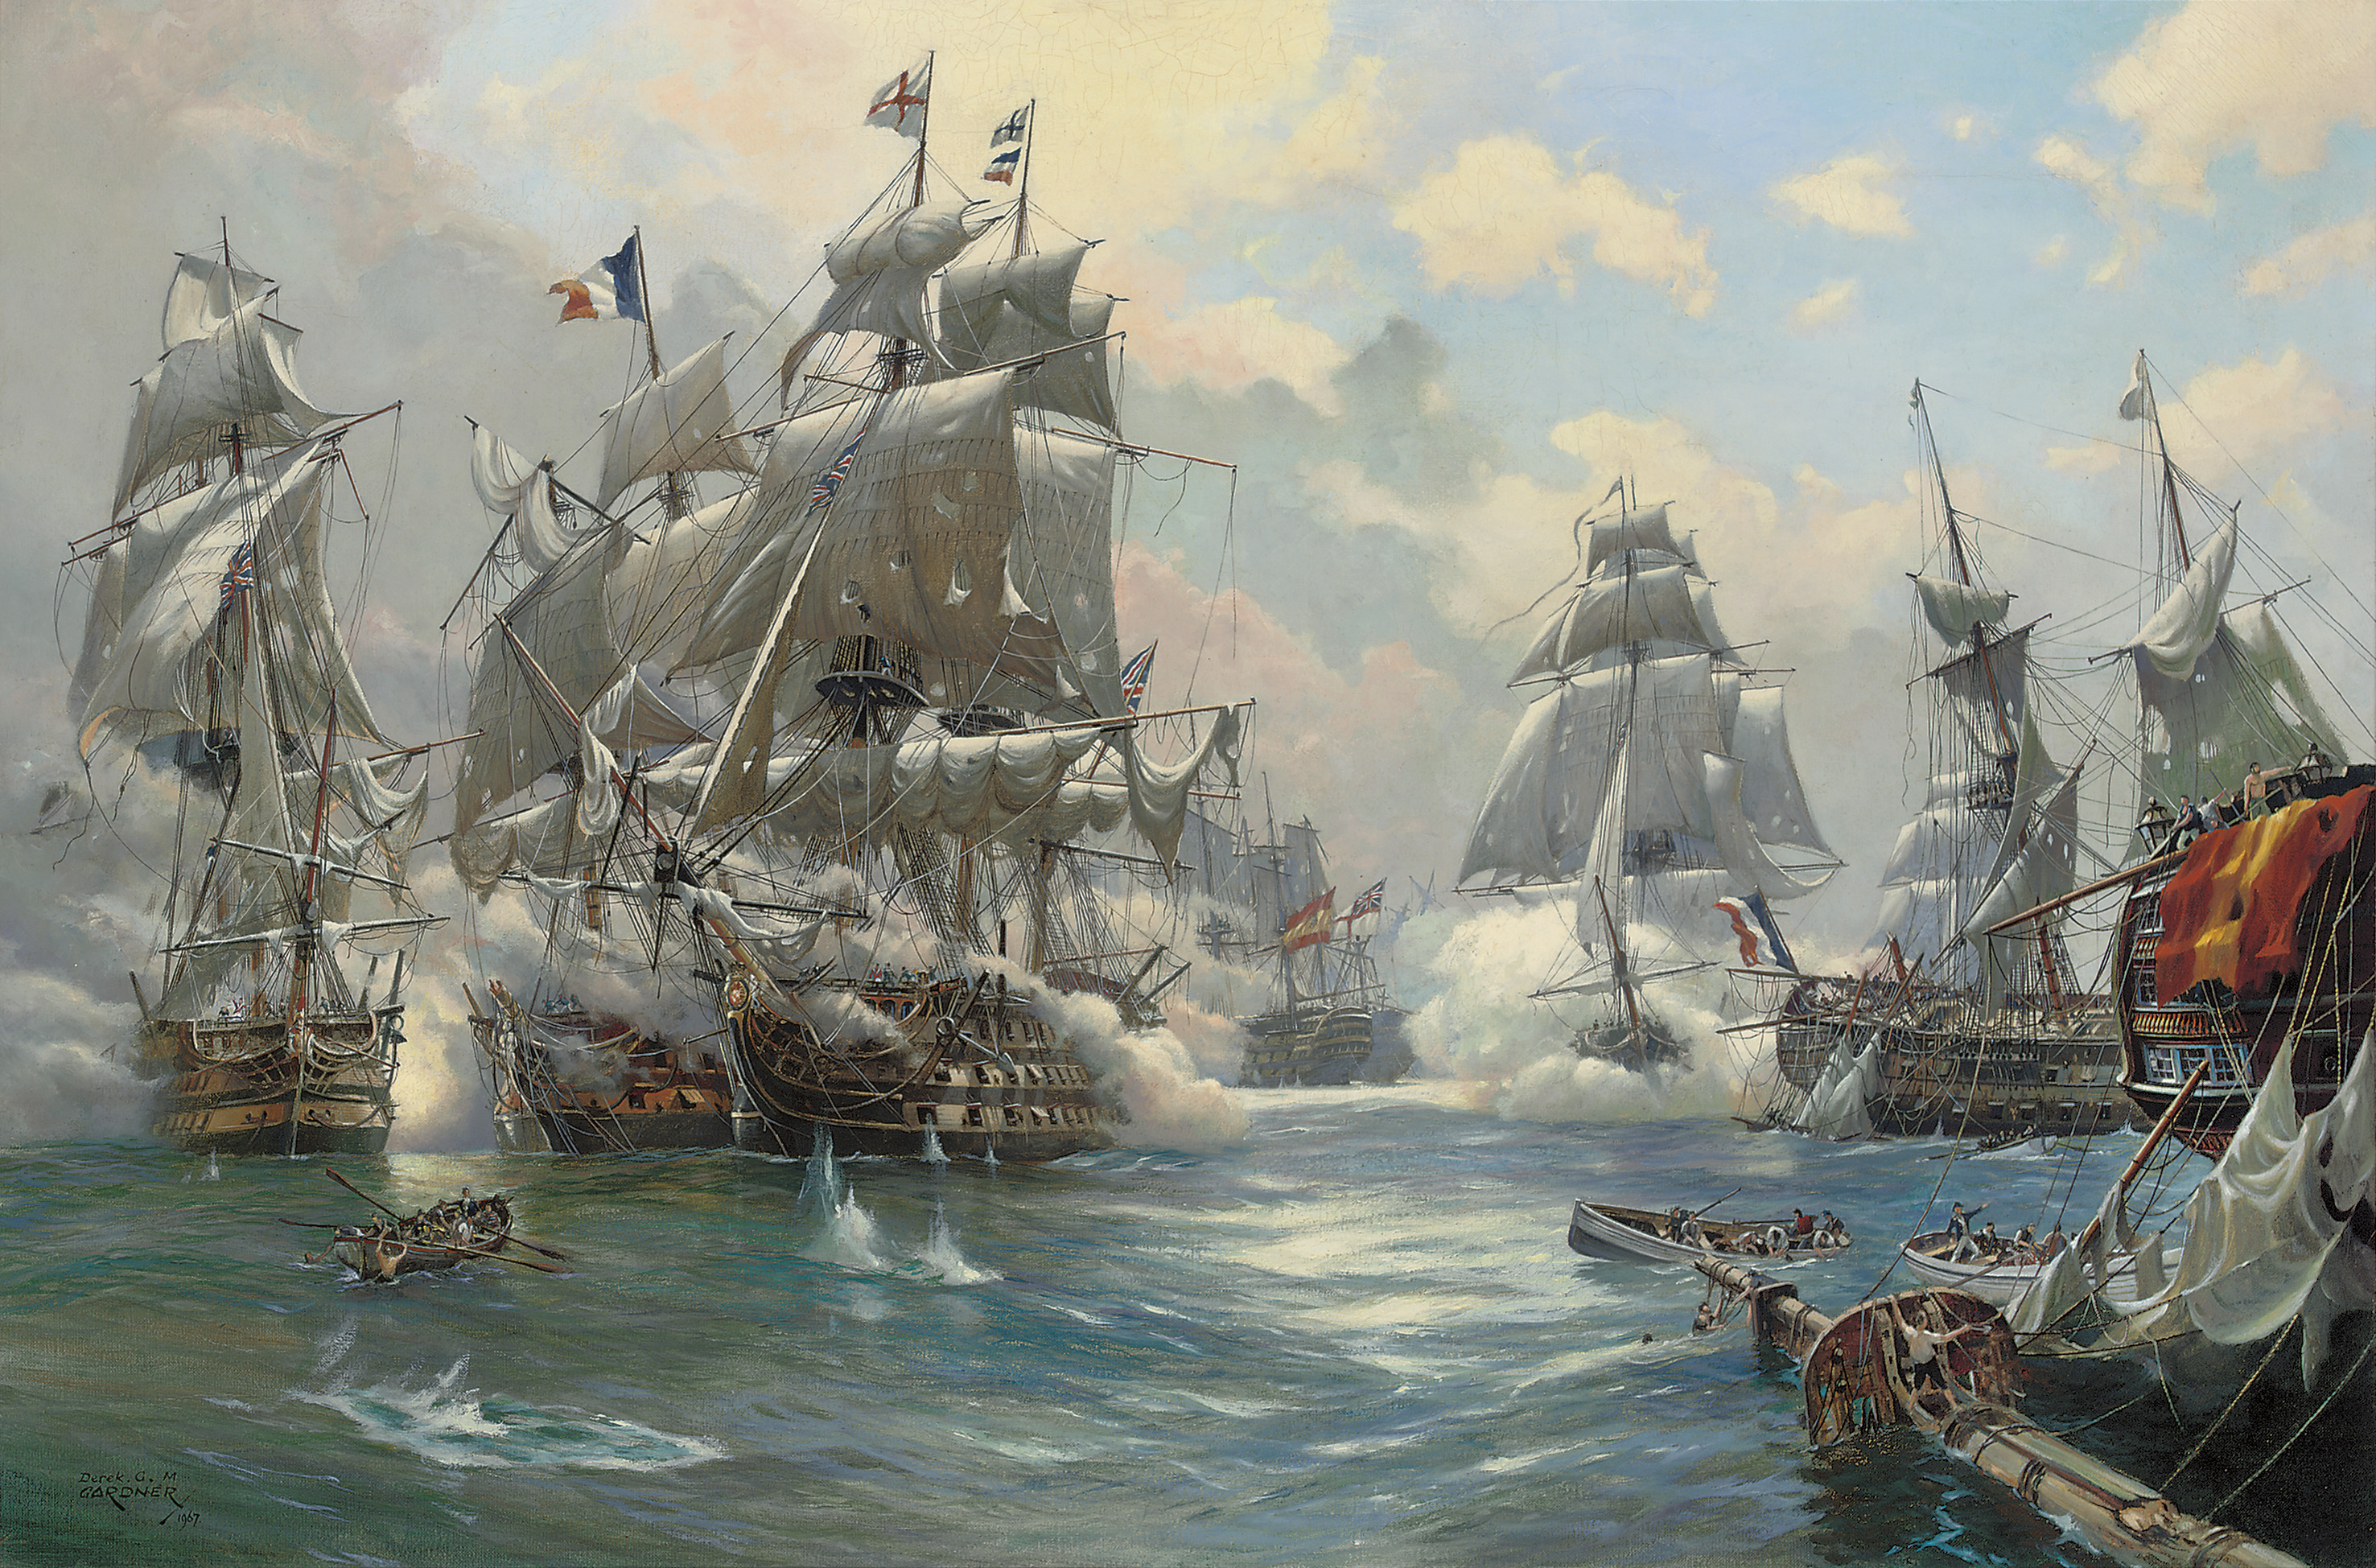 The Battle of Trafalgar: Nelson's Victory and H.M.S. Téméraire engaging the French '74' Rédoubtable, the dismasted hulk of the French flagship Bucentaure lying off Victory's port quarter